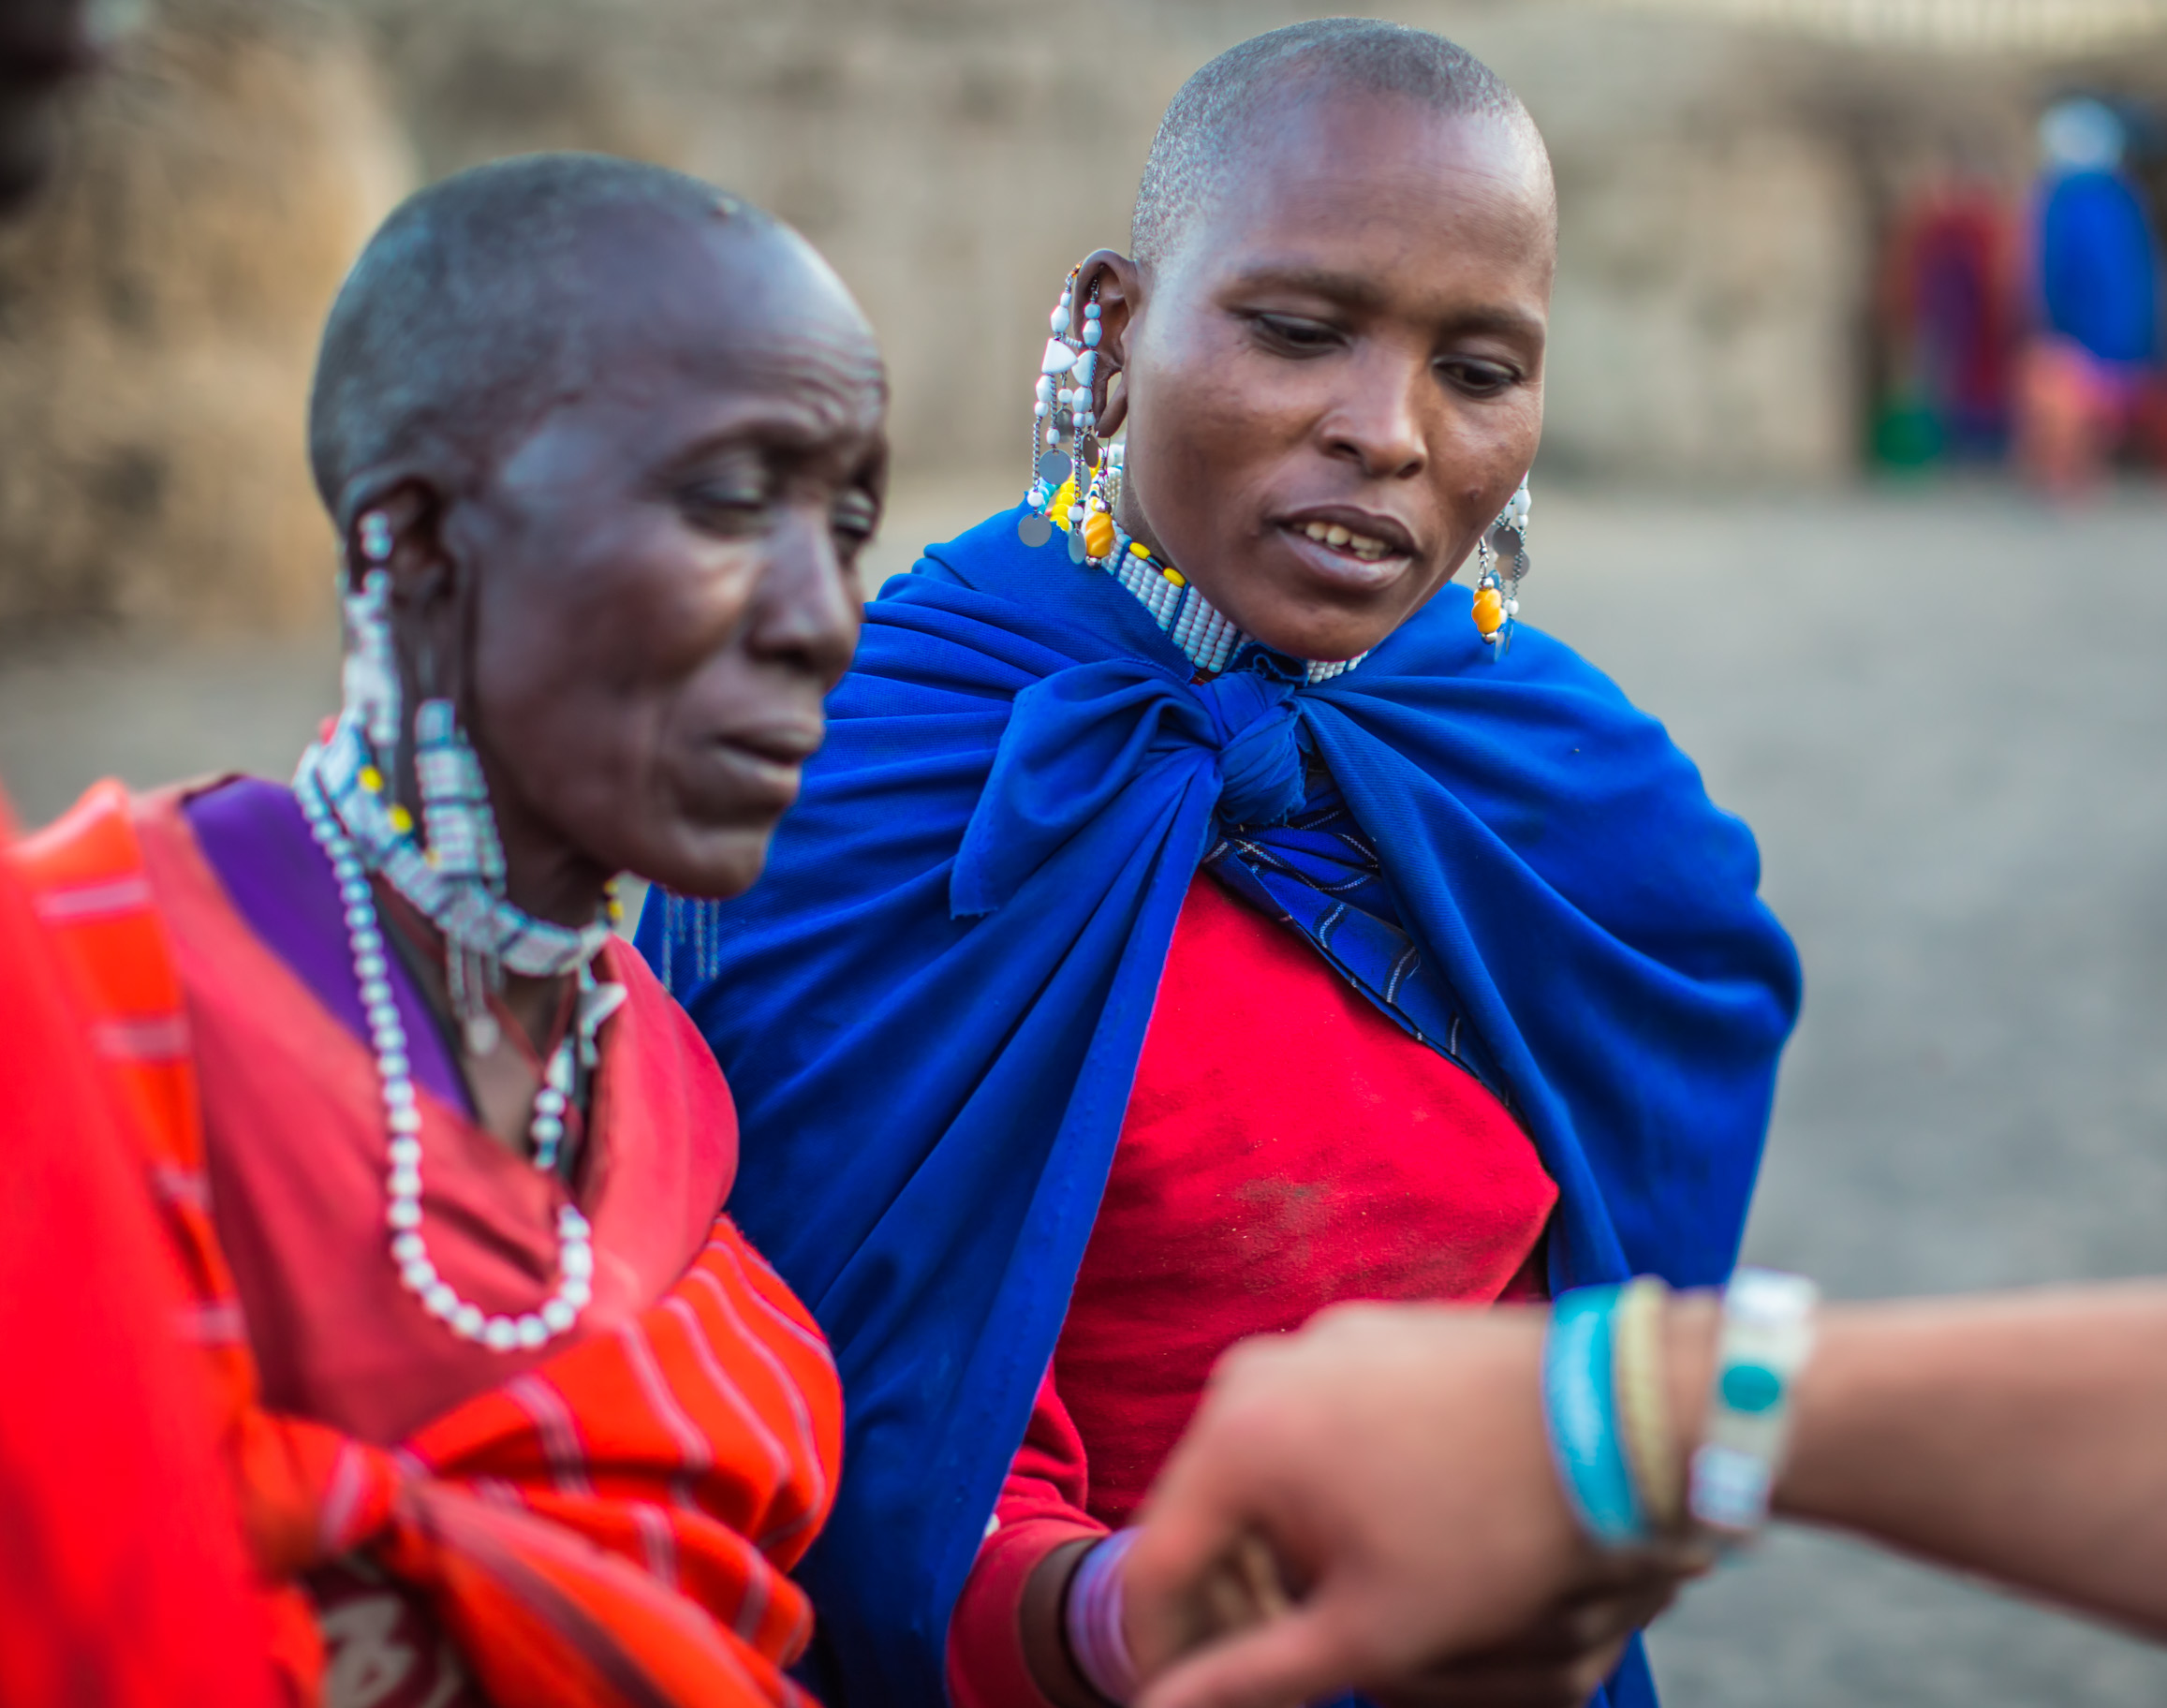 Take a visit to see and learn about the local Maasai people